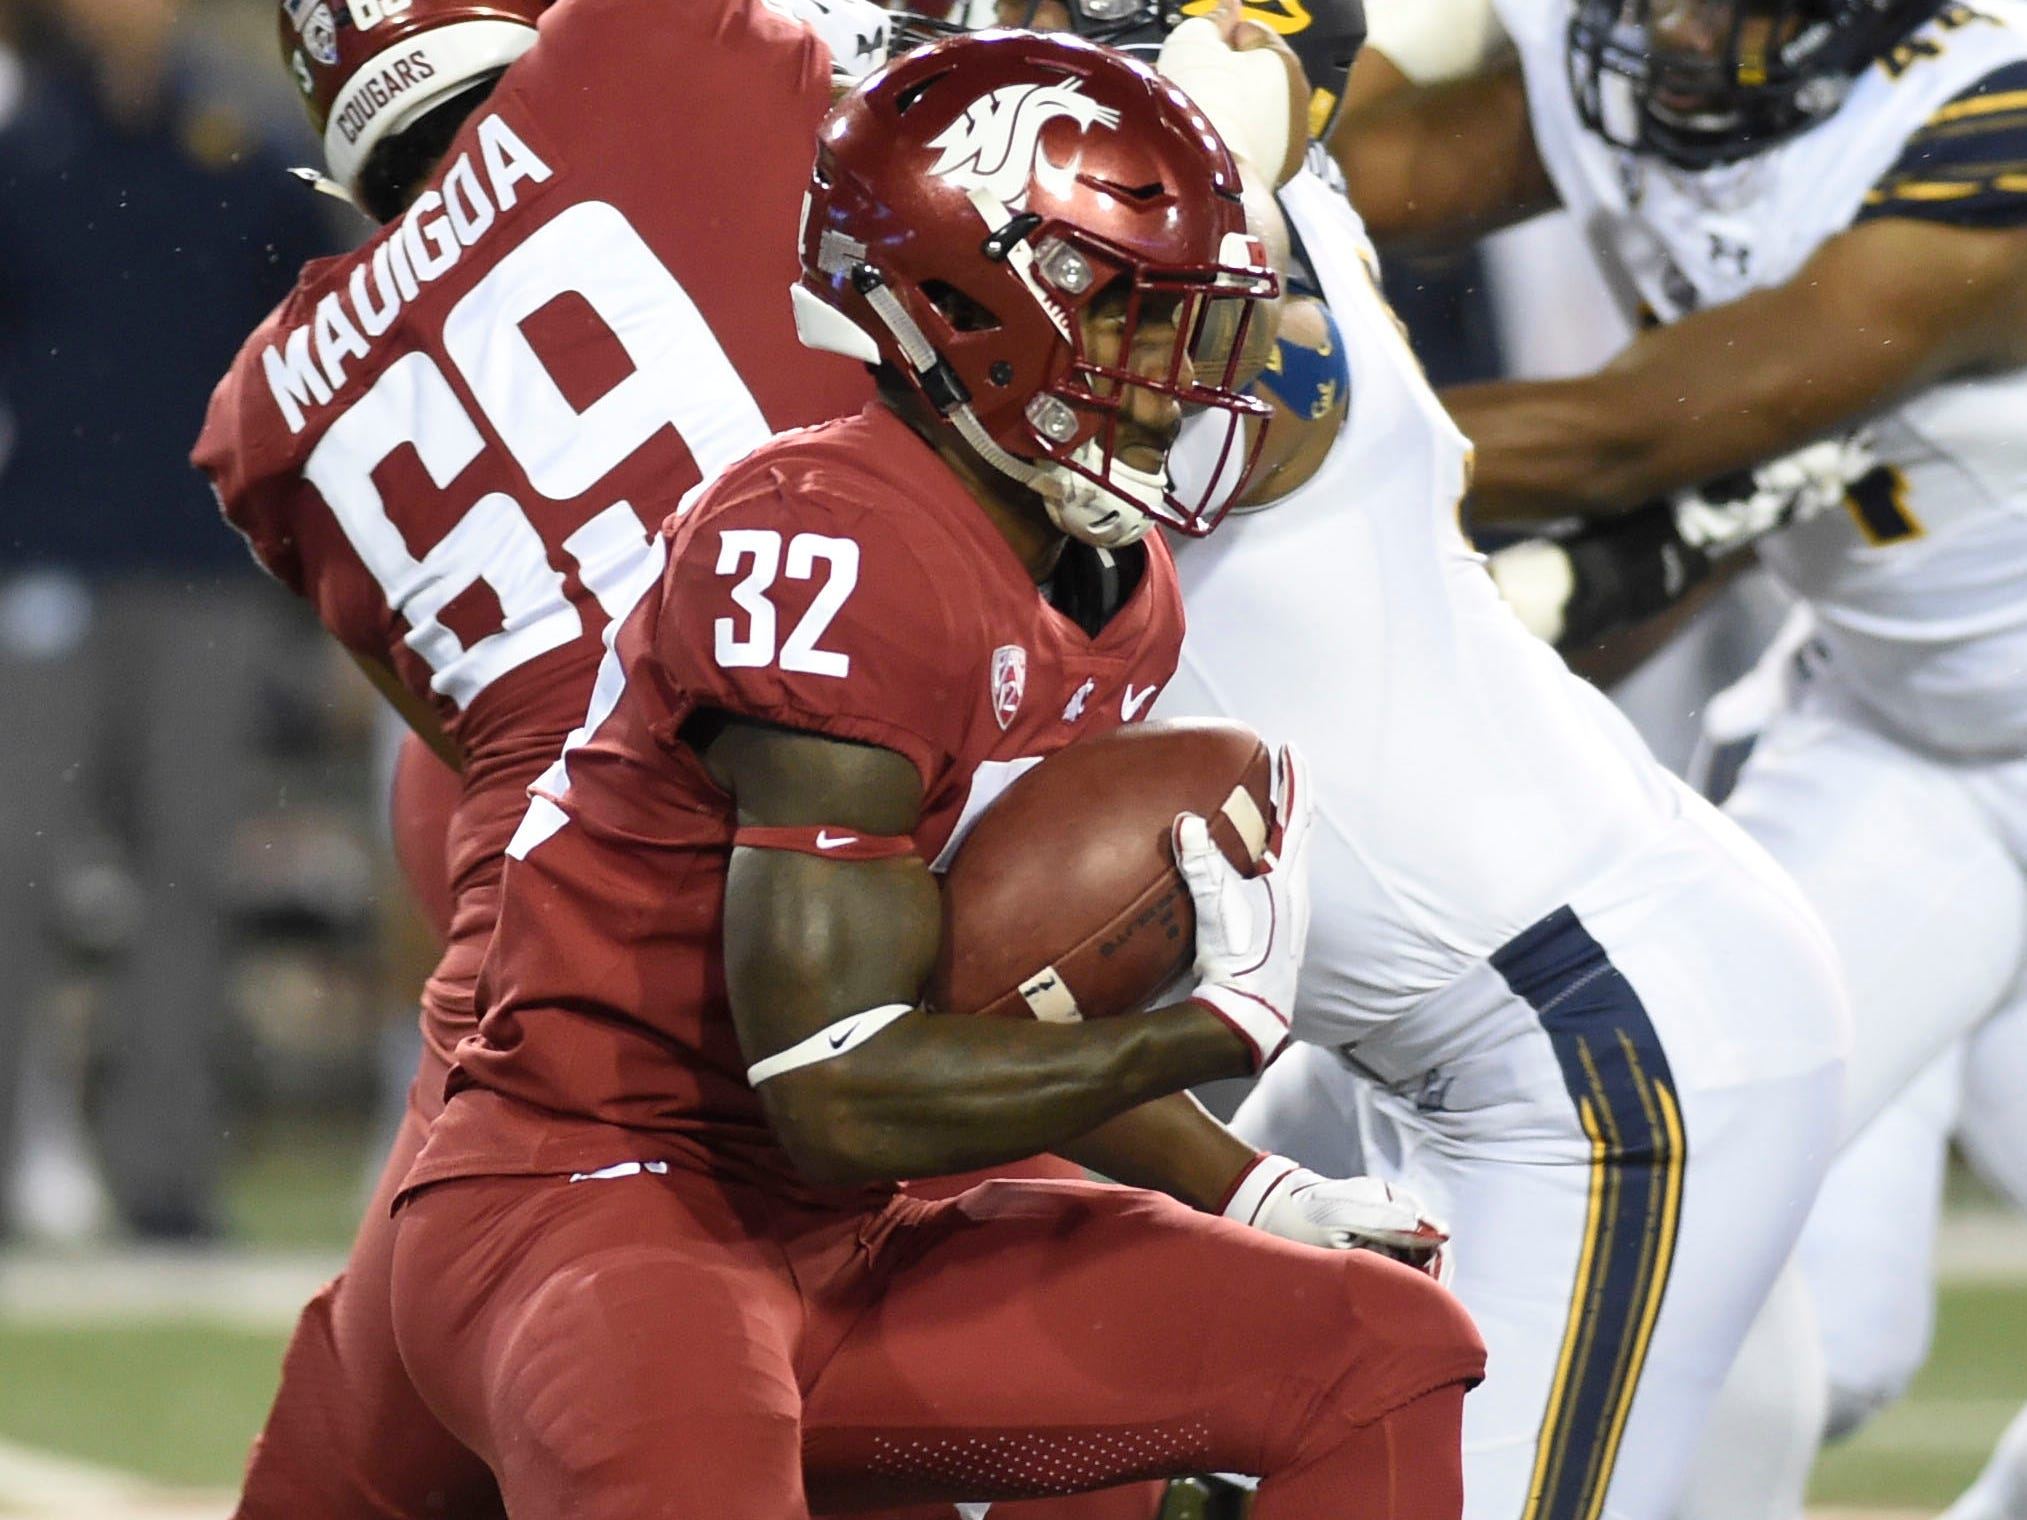 James Williams, RB, Washington State